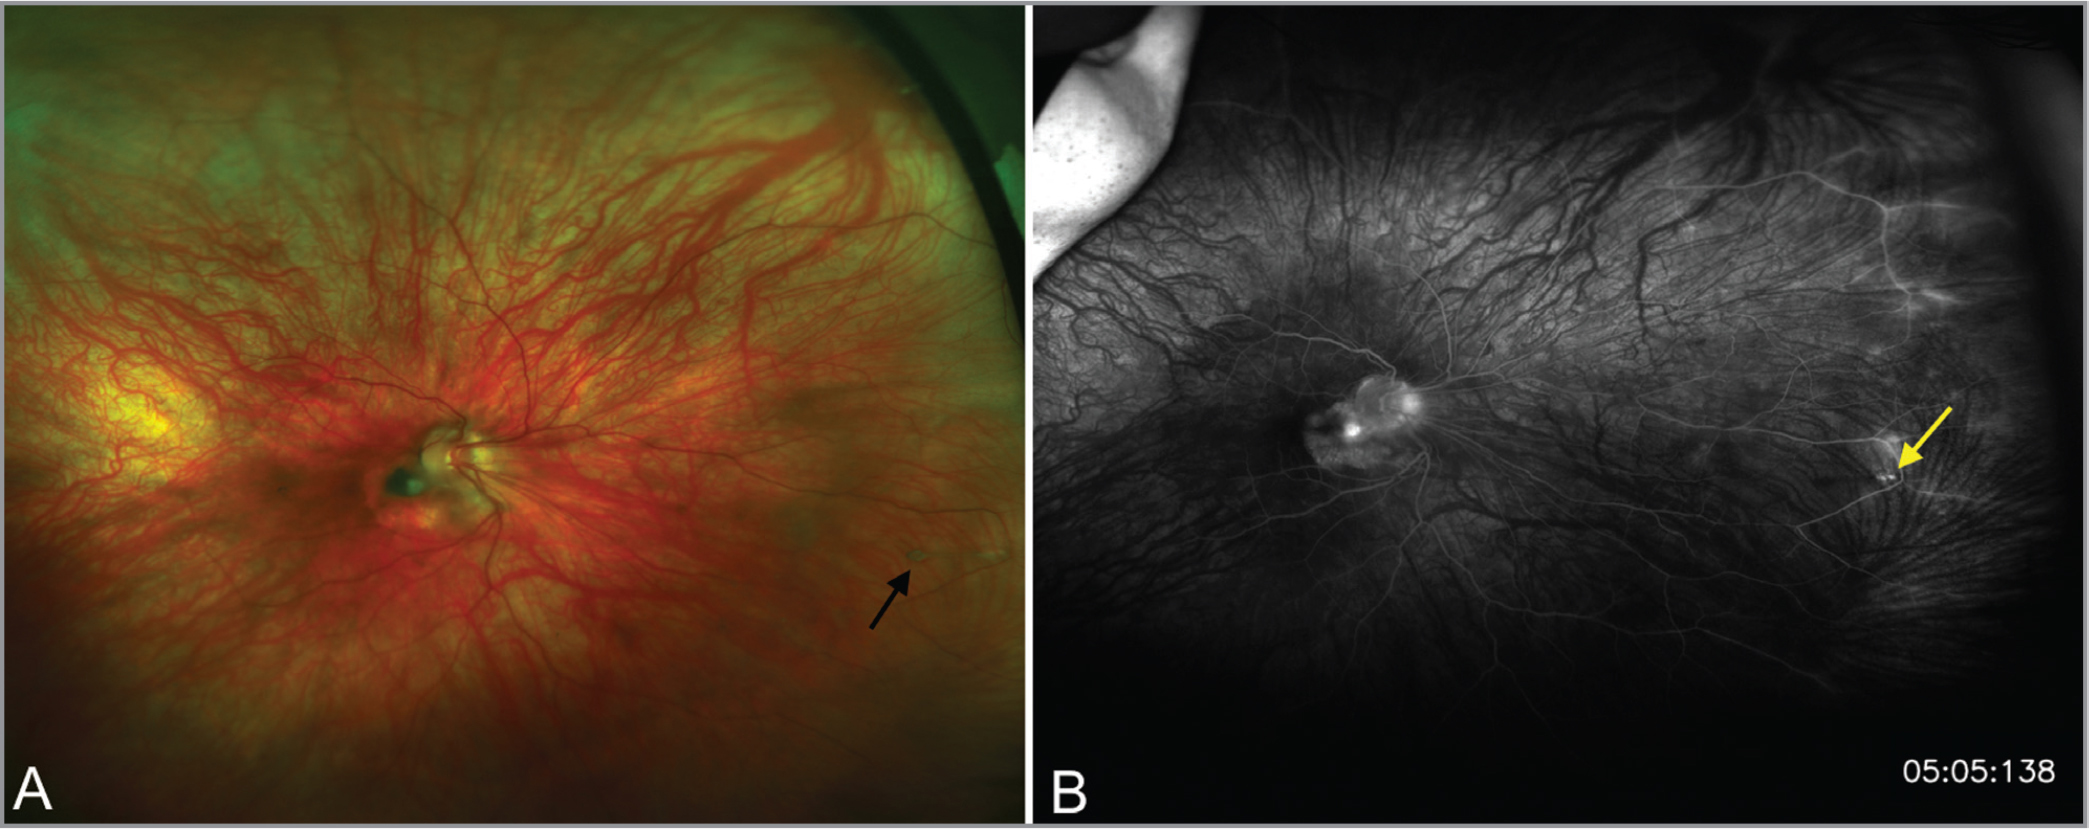 Fundus photograph and fluorescein angiogram (FA) of the right eye in Case 3. (A) Widefield fundus photograph demonstrating a peripapillary lesion with surrounding peripapillary atrophy, nasal dragging of retinal vasculature, and a persistent fetal vasculature stalk in the nasal periphery (black arrow) and (B) late FA demonstrating late staining at the base of the vitreal stalk consistent with a window defect without filling of the stalk (yellow arrow).